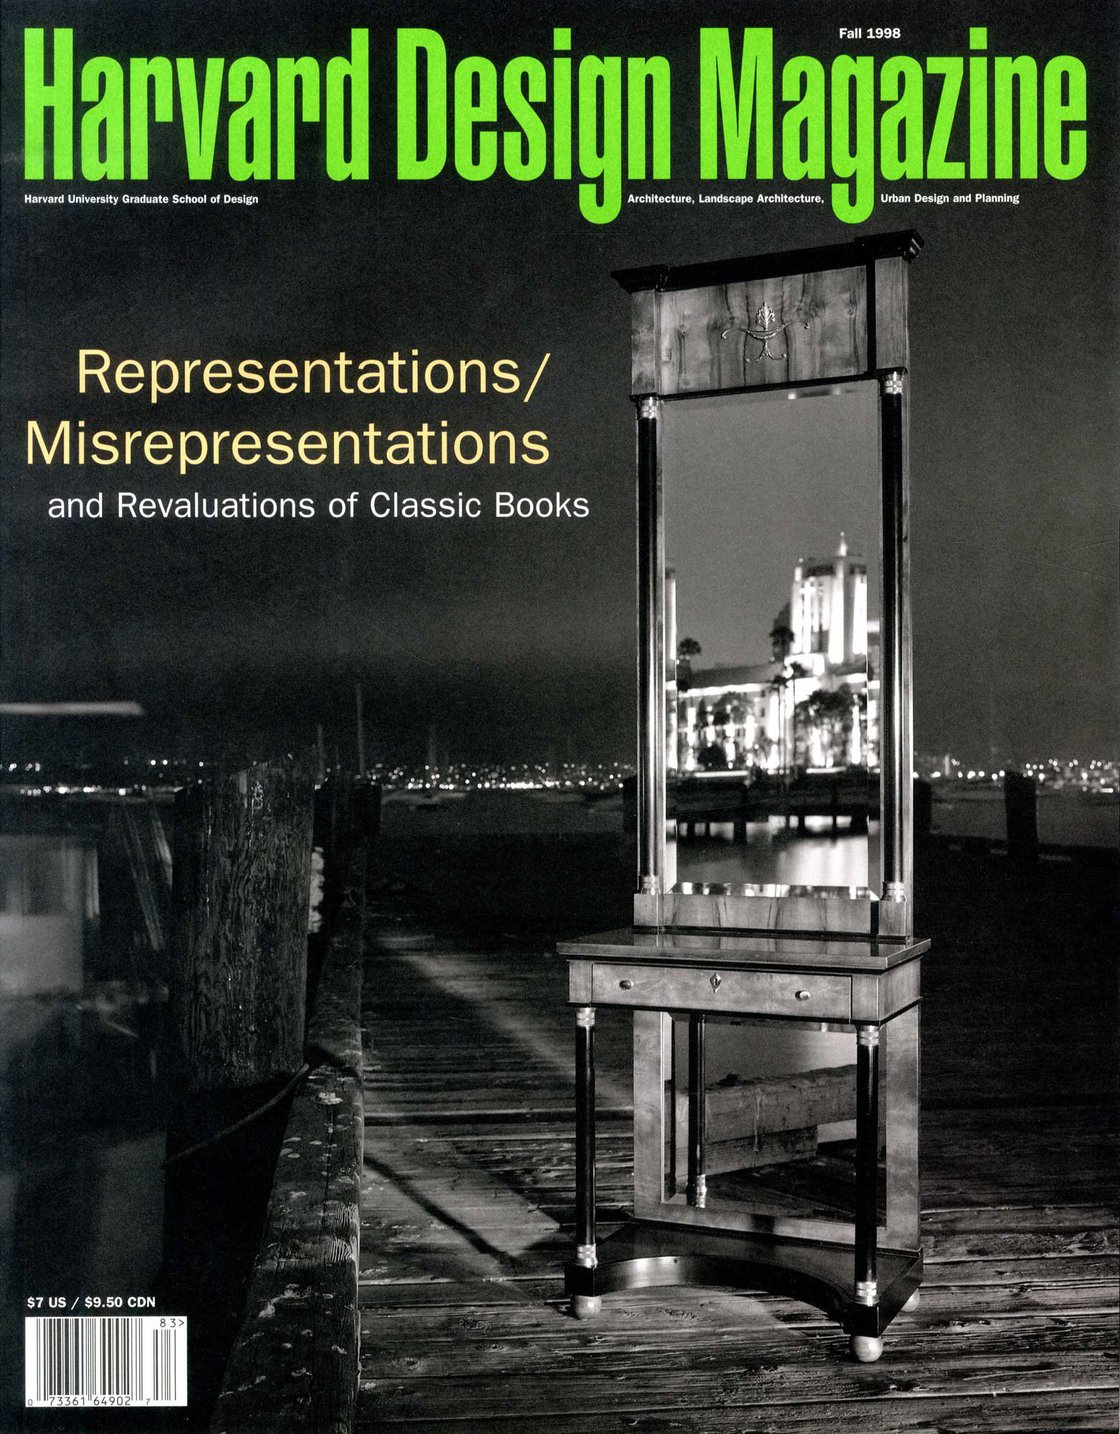 No. 6, Fall 1998 Representations/Misrepresentations and Revaluations of Classic Books